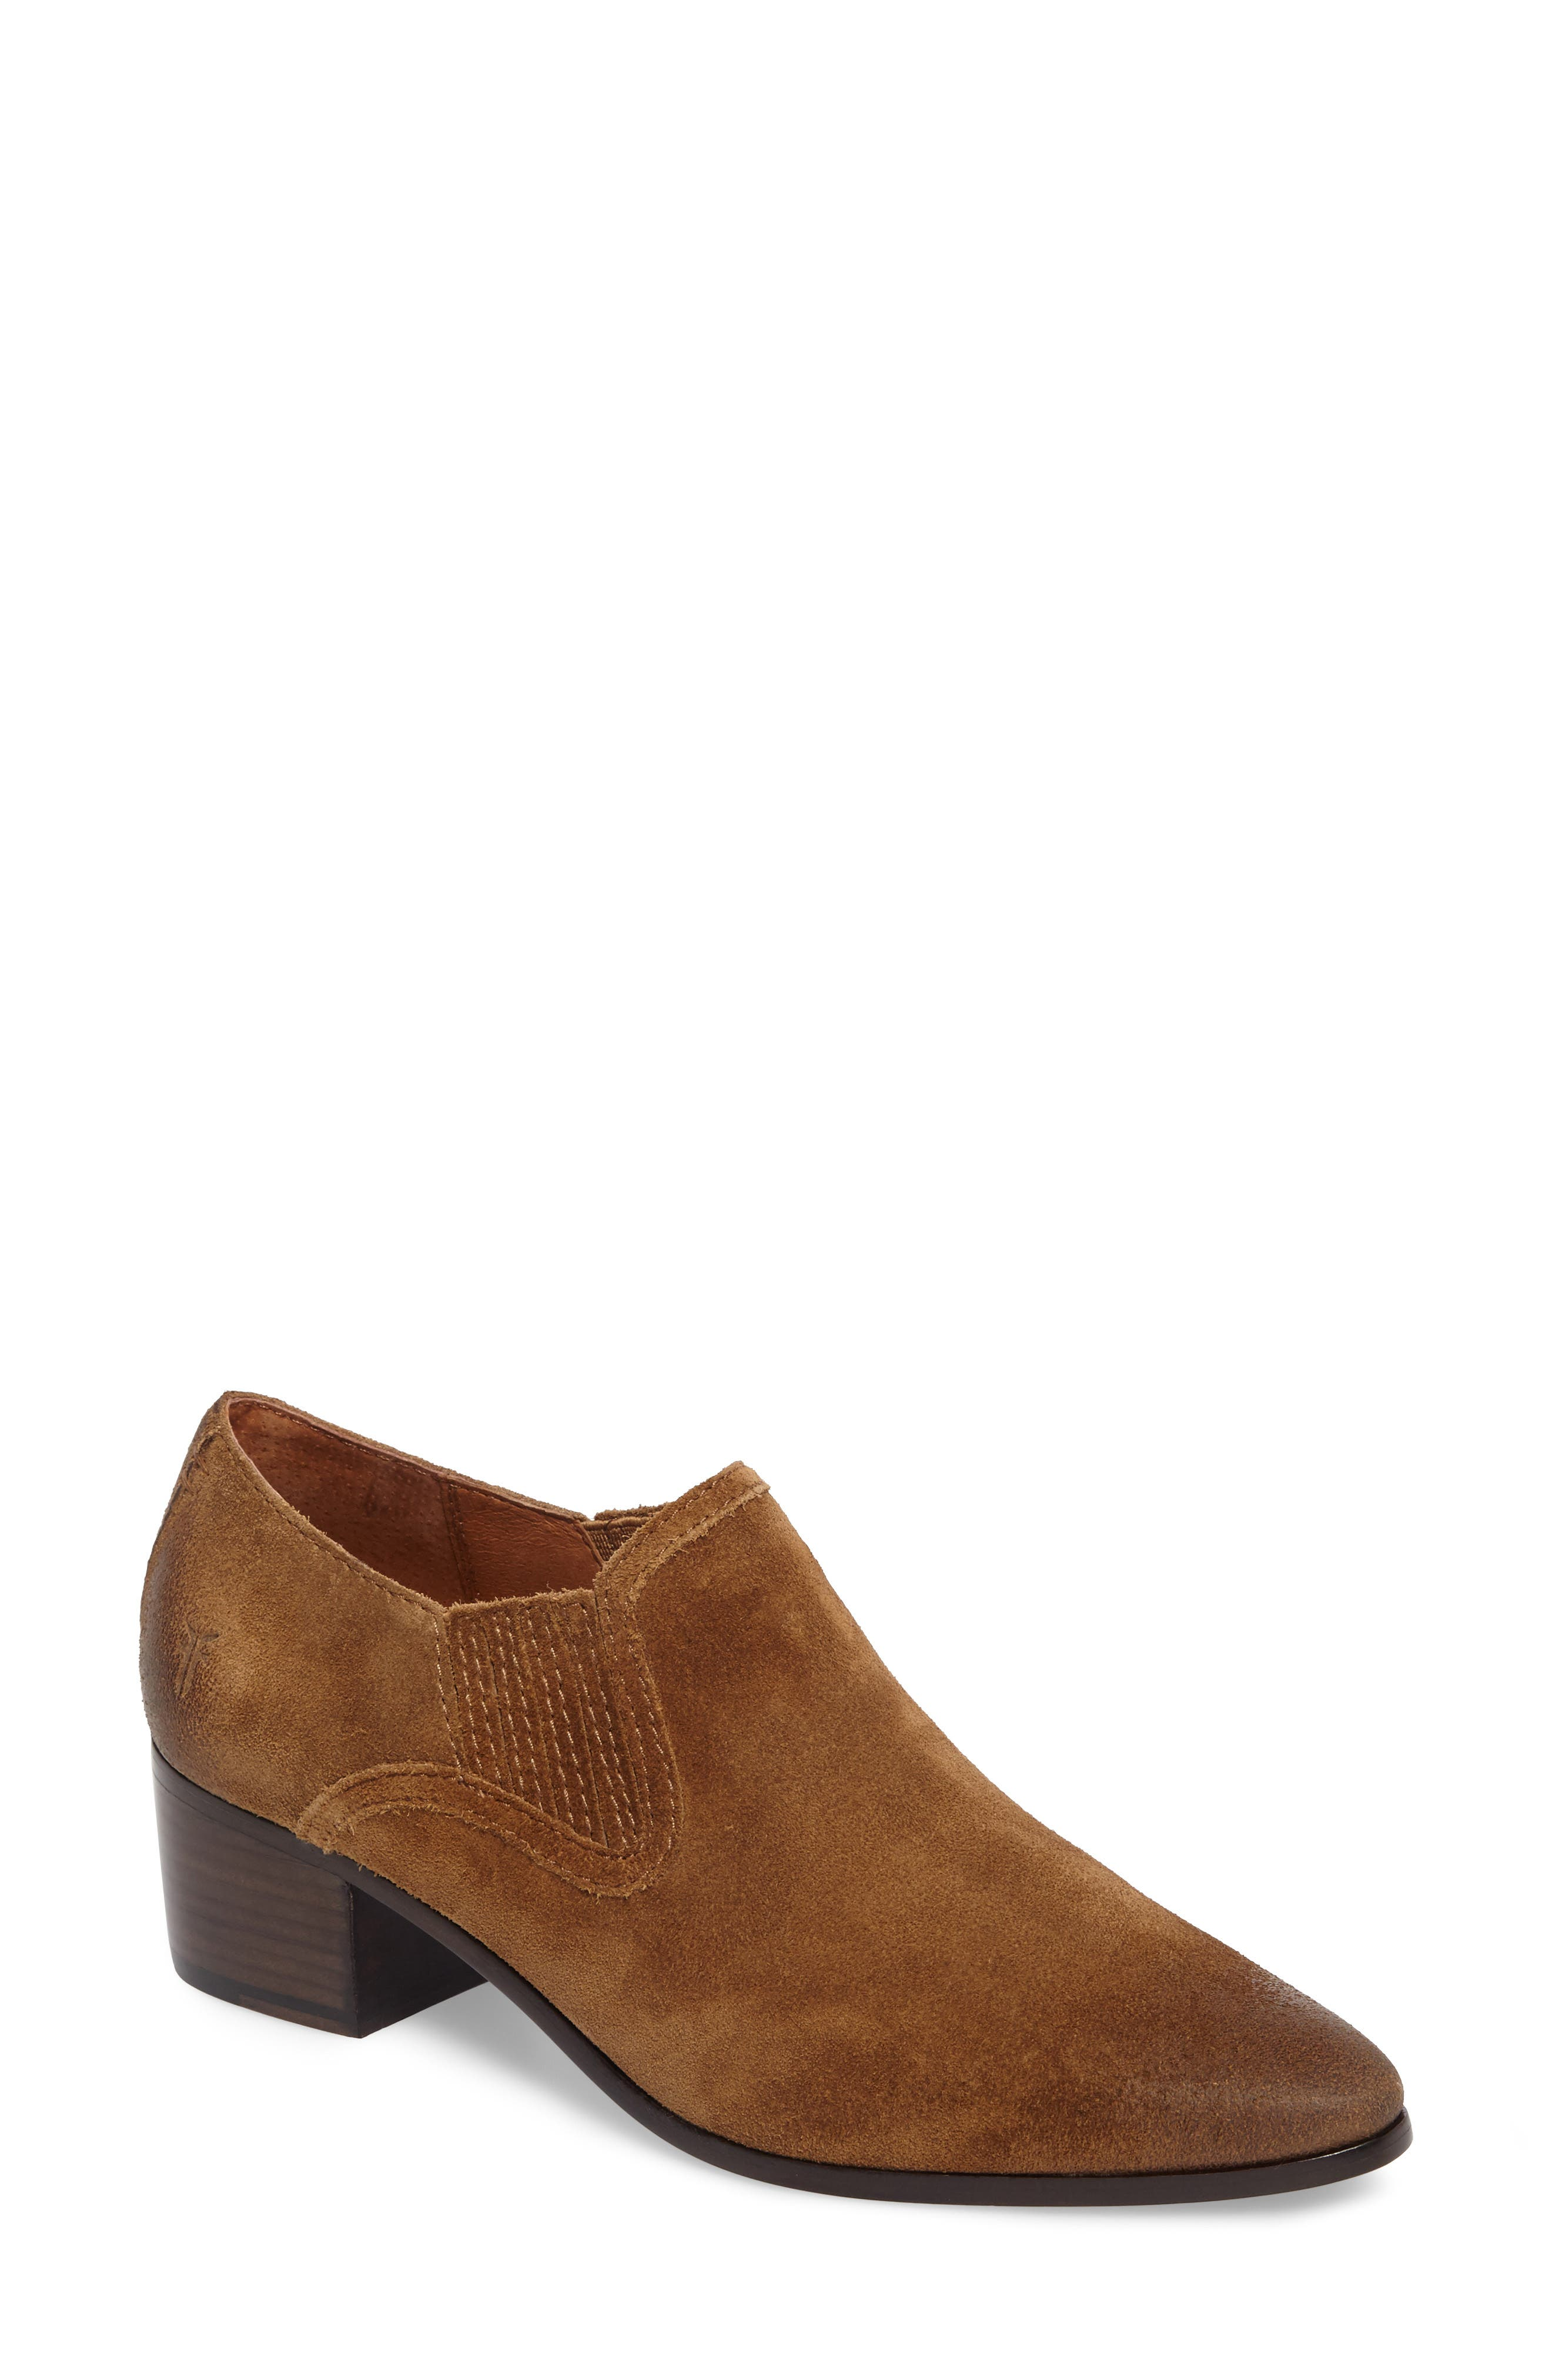 Eleanor Pointy Toe Bootie,                         Main,                         color, Chestnut